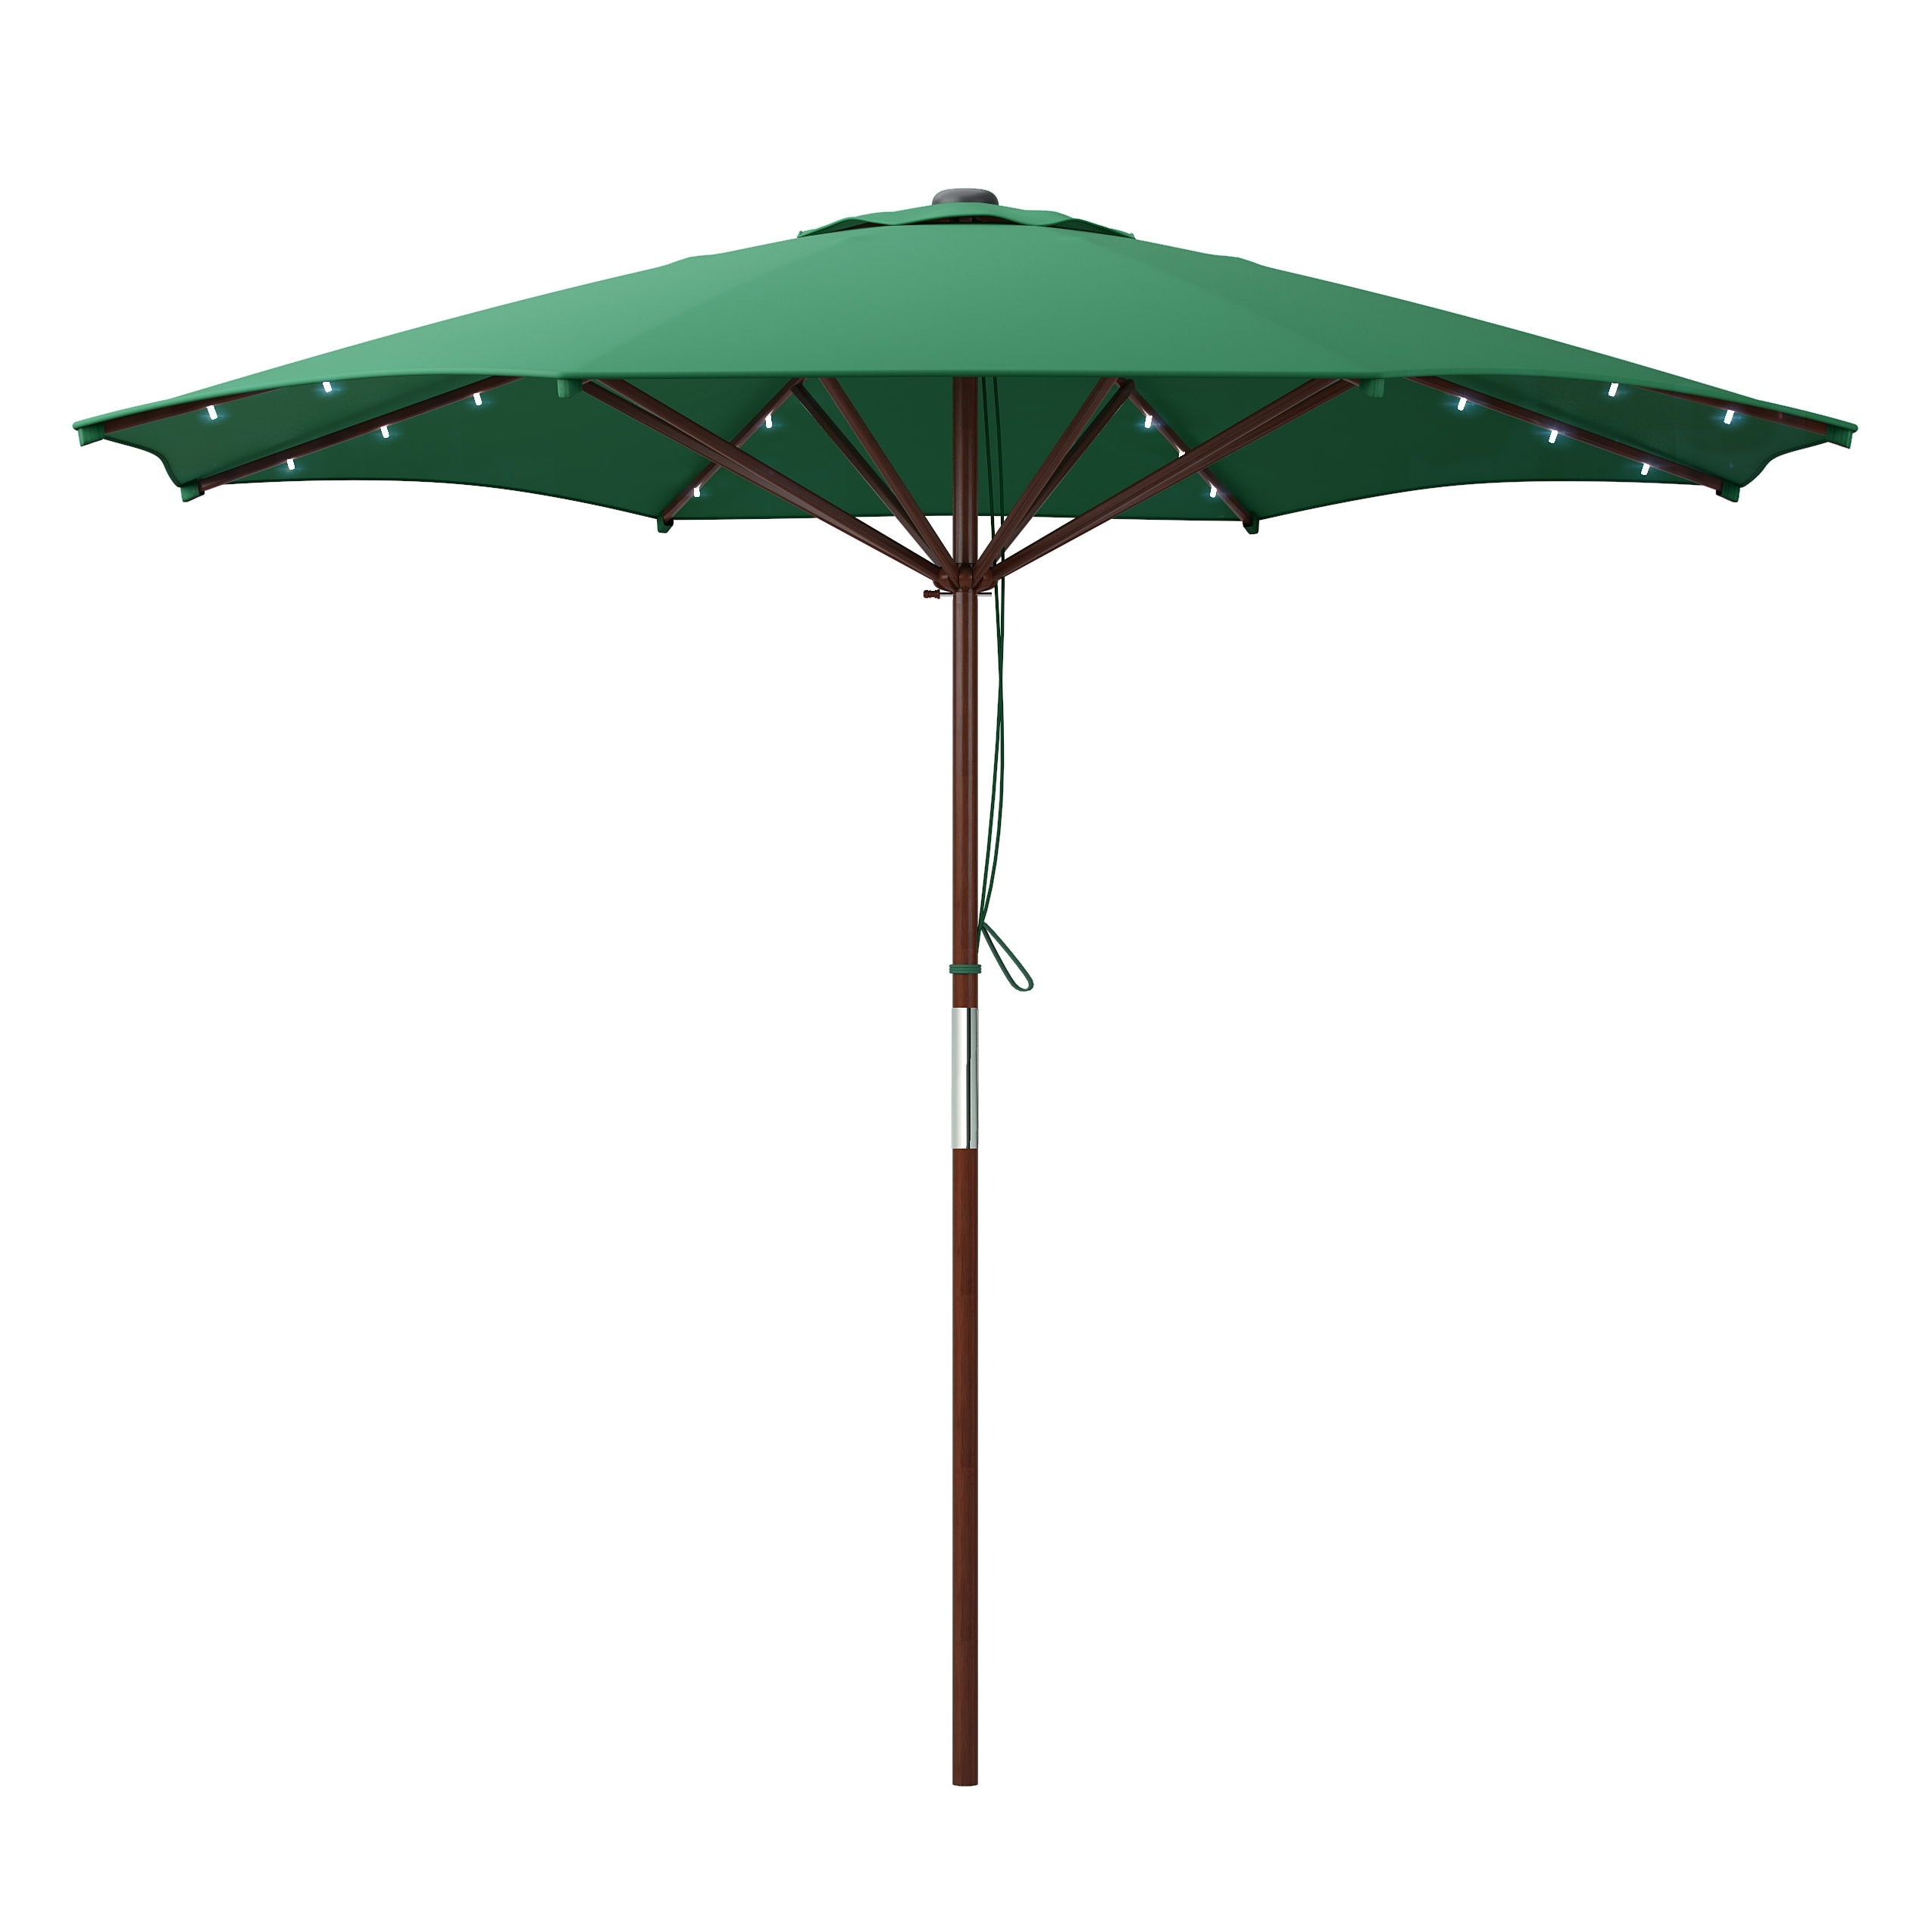 Favorite Patio Umbrellas With Solar Led Lights Within Green Patio Umbrella With Solar Power Led Lights (View 18 of 20)